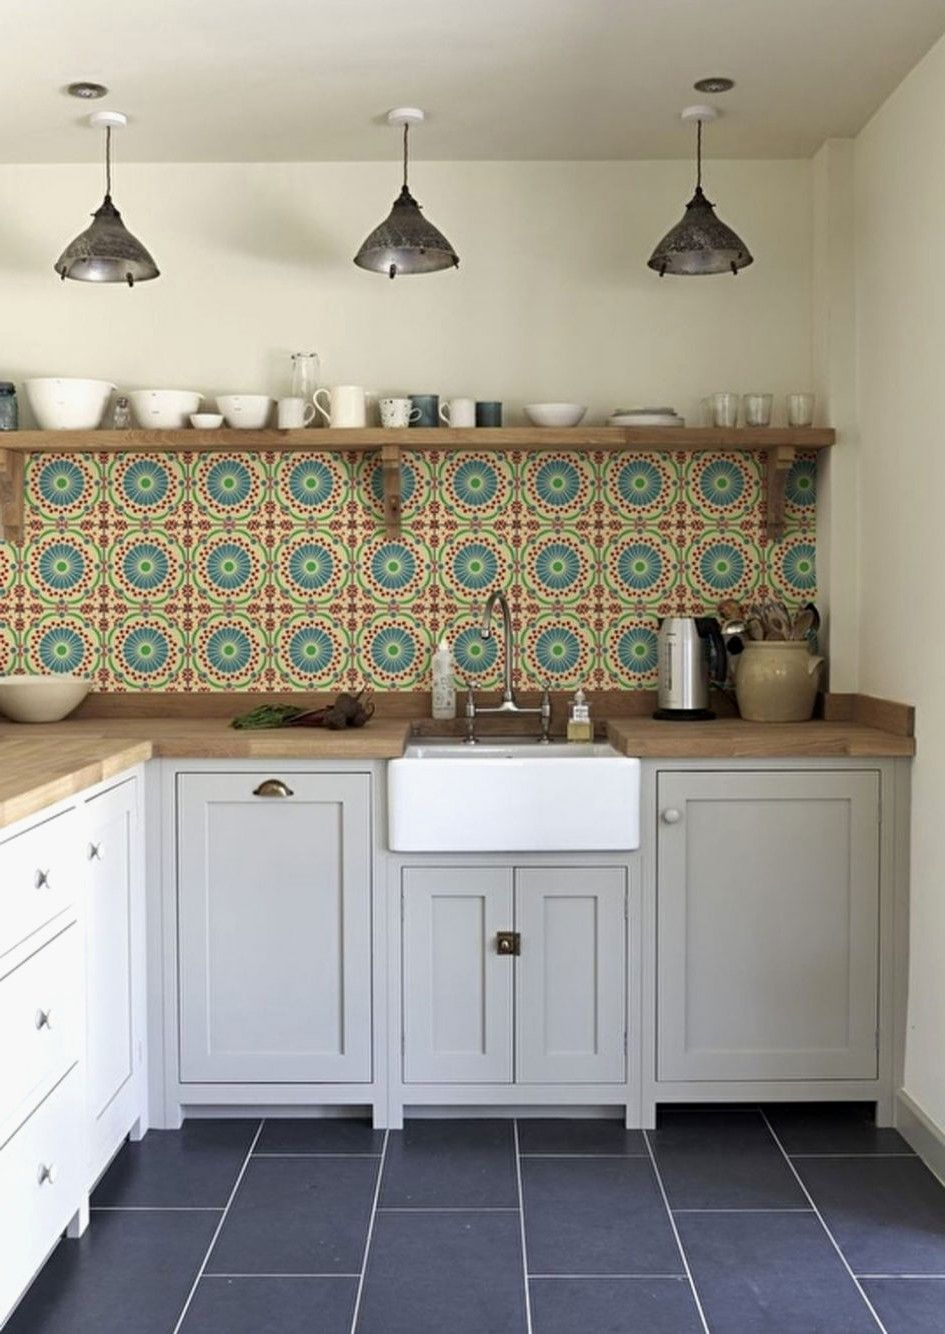 Design Simple Modern Kitchen Retro Tiles Large Wall Fresh Backsplash